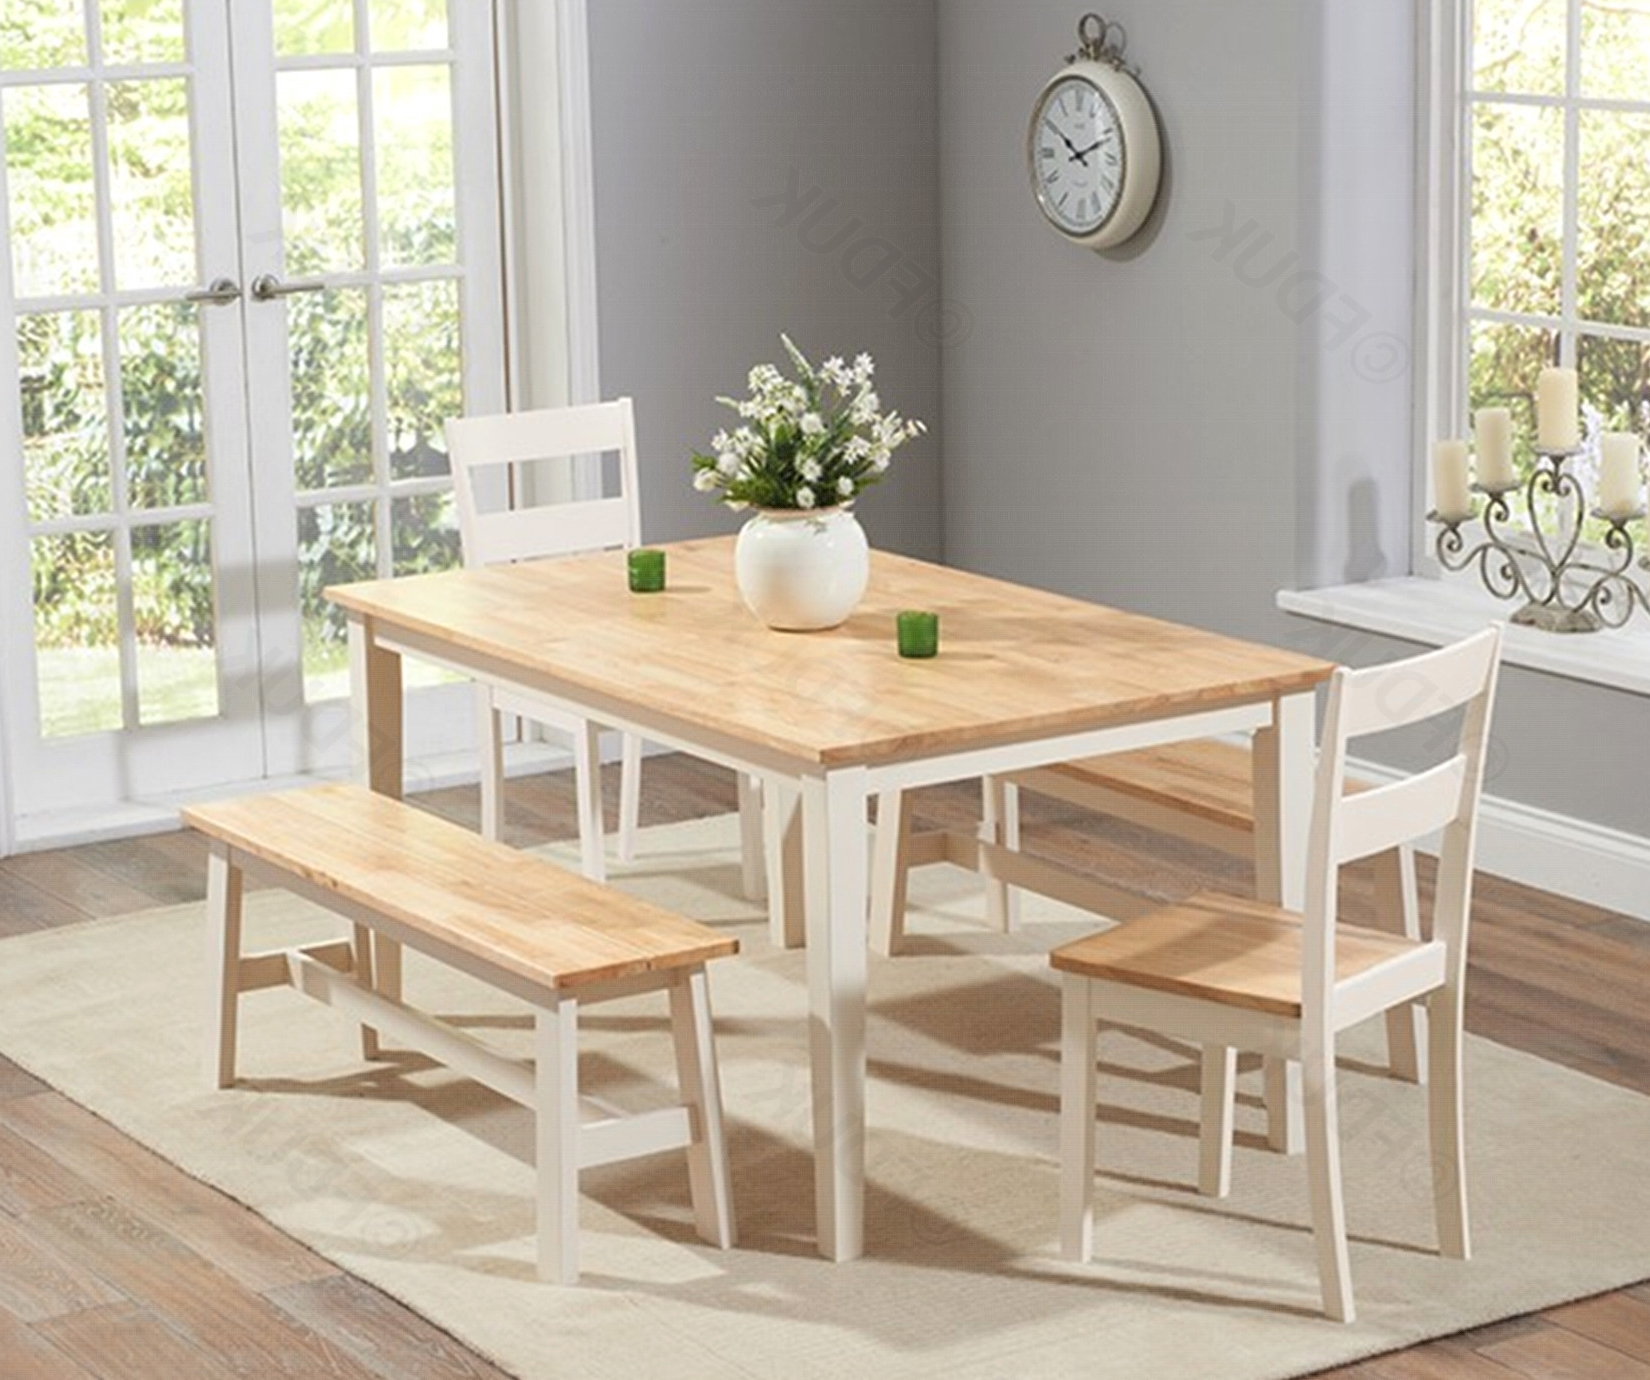 Best And Newest Cream And Wood Dining Tables Intended For Mark Harris Chichester (View 3 of 25)